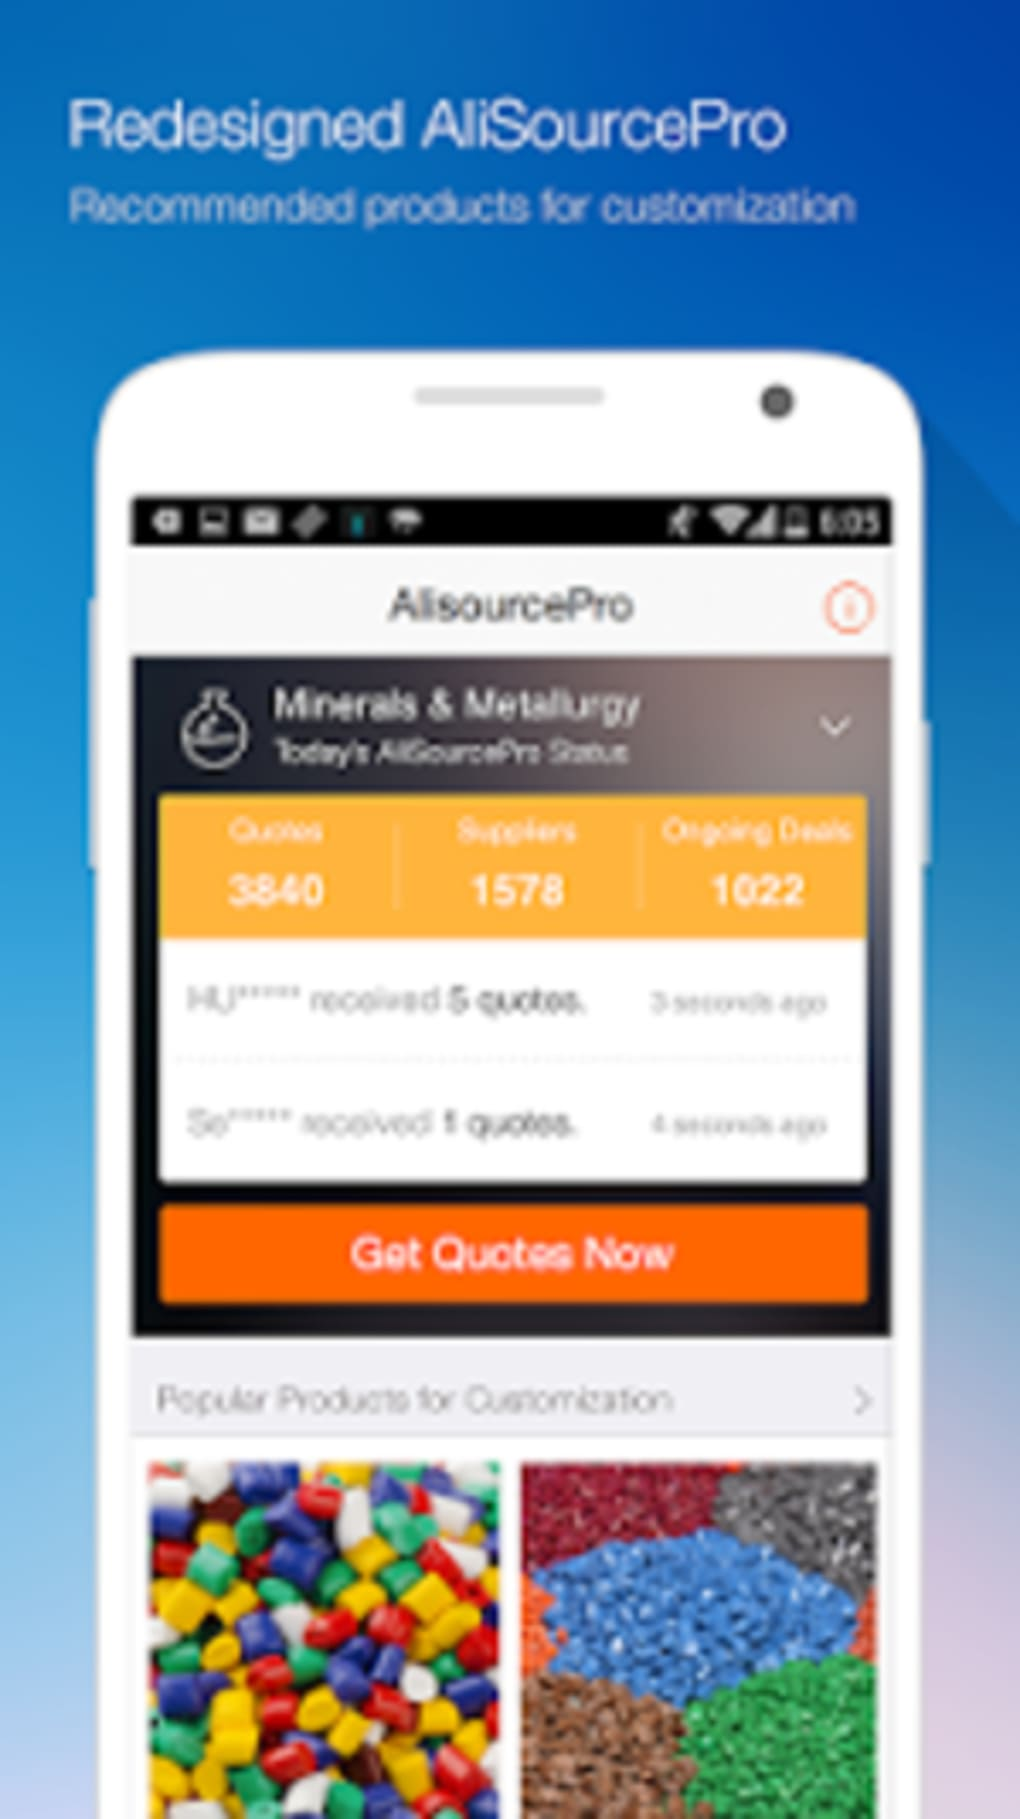 Alibaba Com Apk For Android Download Aliexpress is a business within alibaba group.aliexpress offers over 100 million fascinating product. alibaba com apk for android download